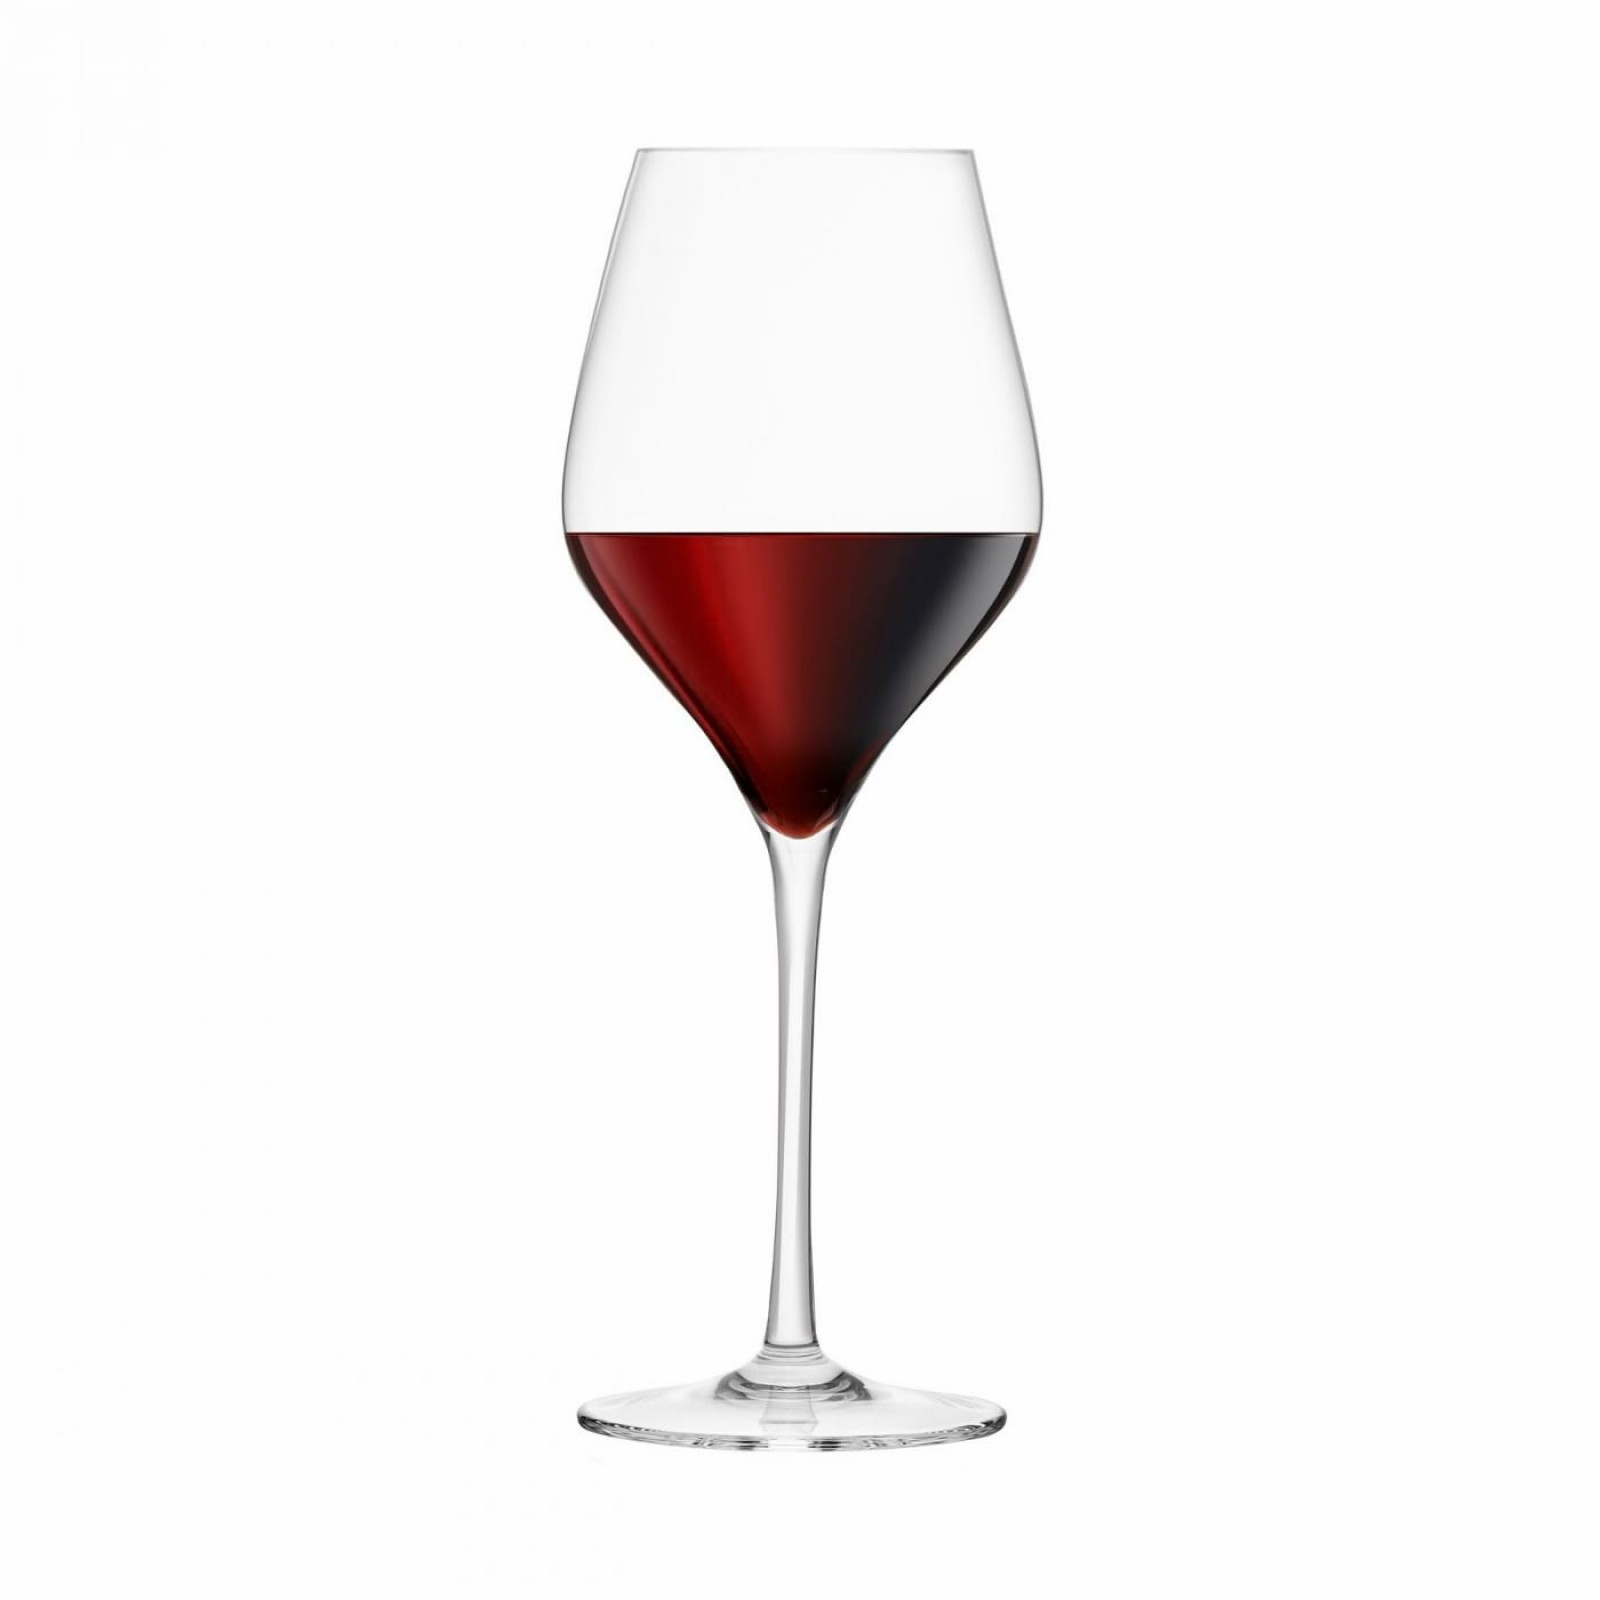 Red Wine Lead-Free Crystal Glasses (Set of 4) - Final Touch